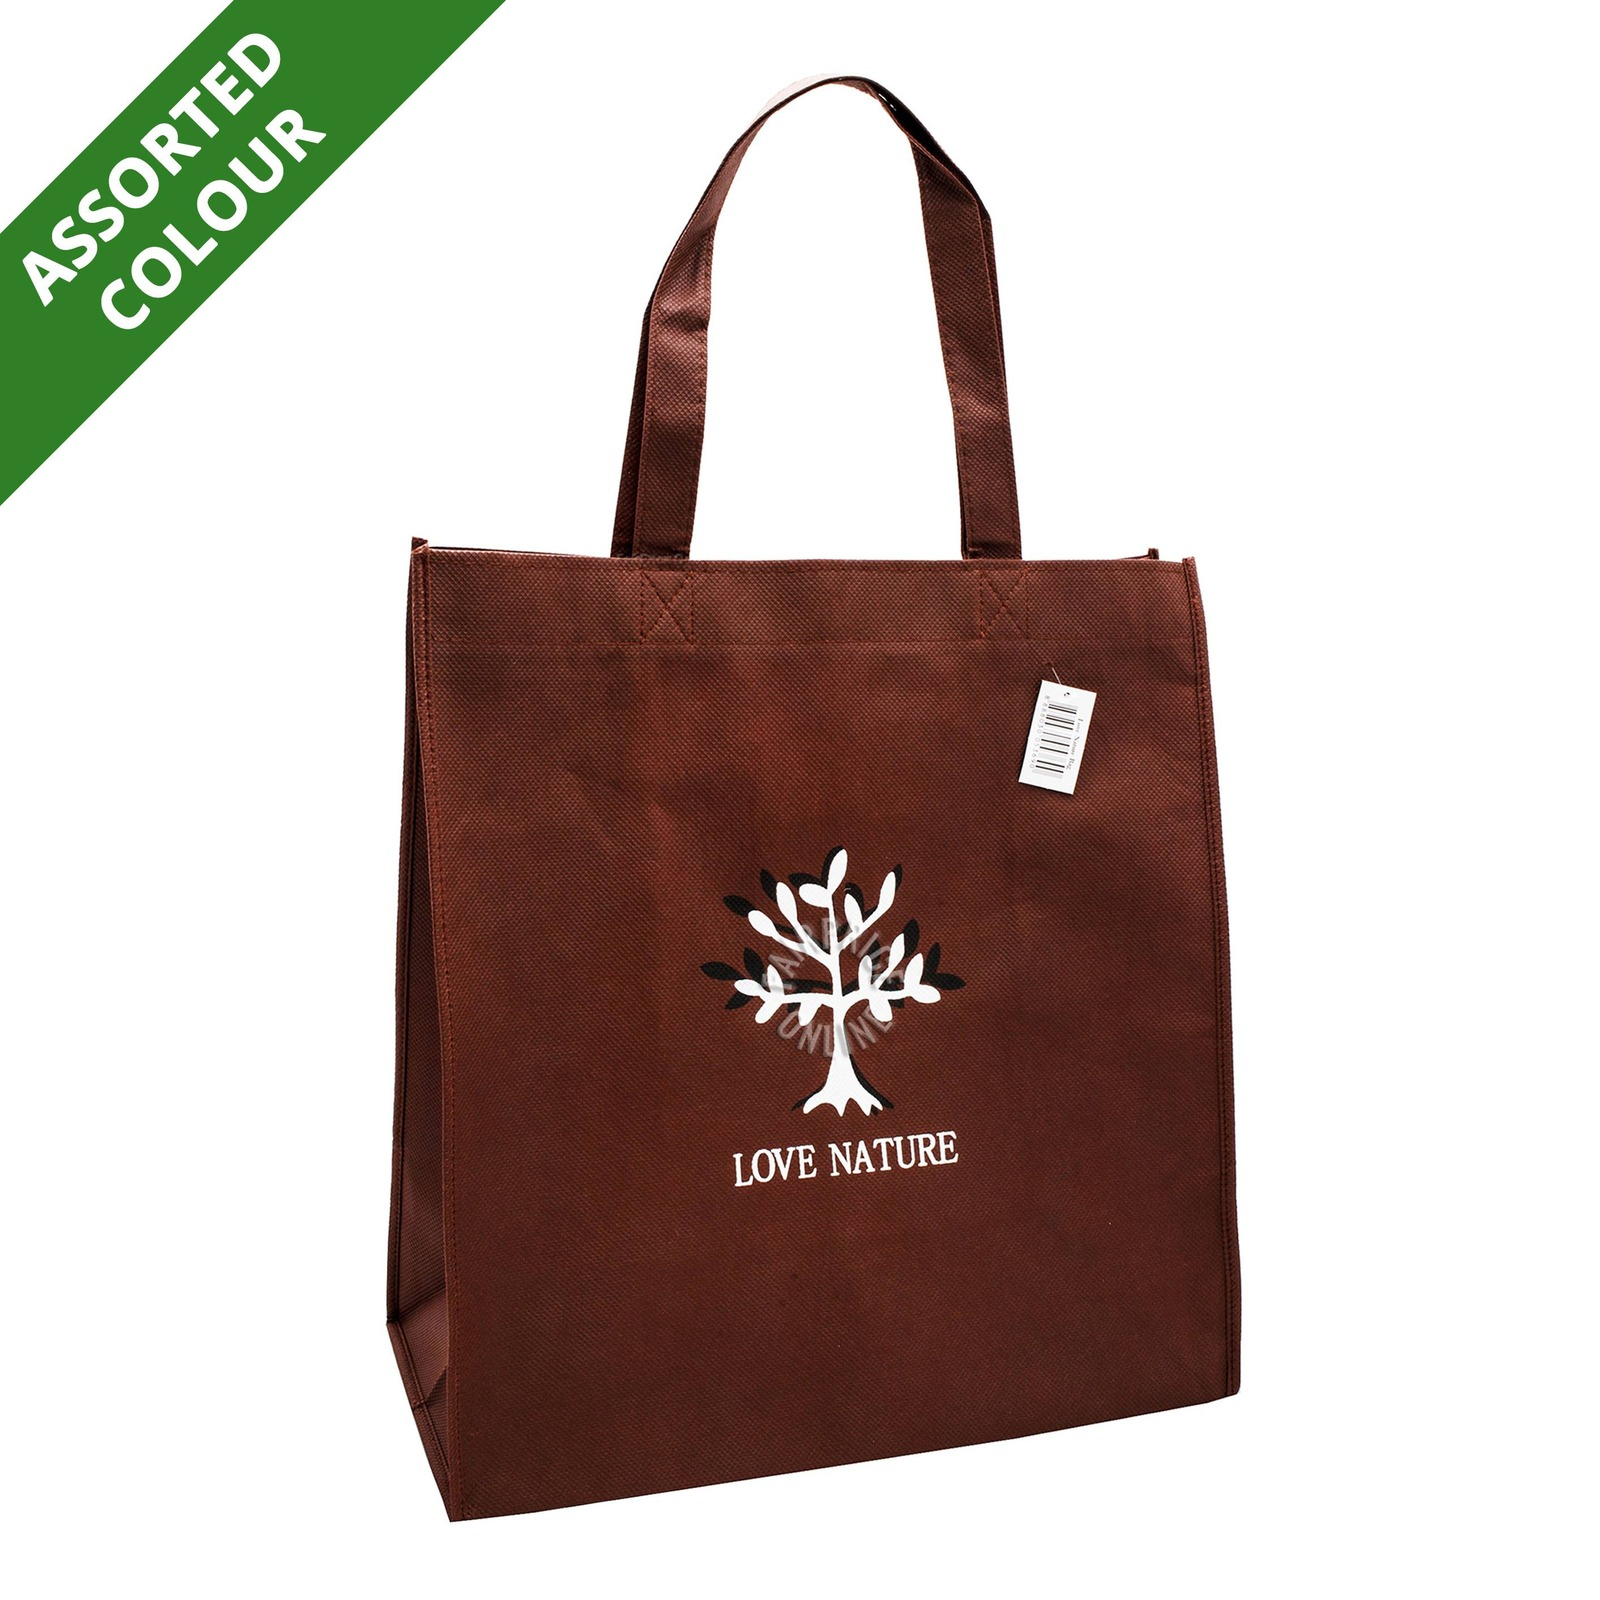 FairPrice Love Nature Recycle Bag - Big (Assorted Colours)